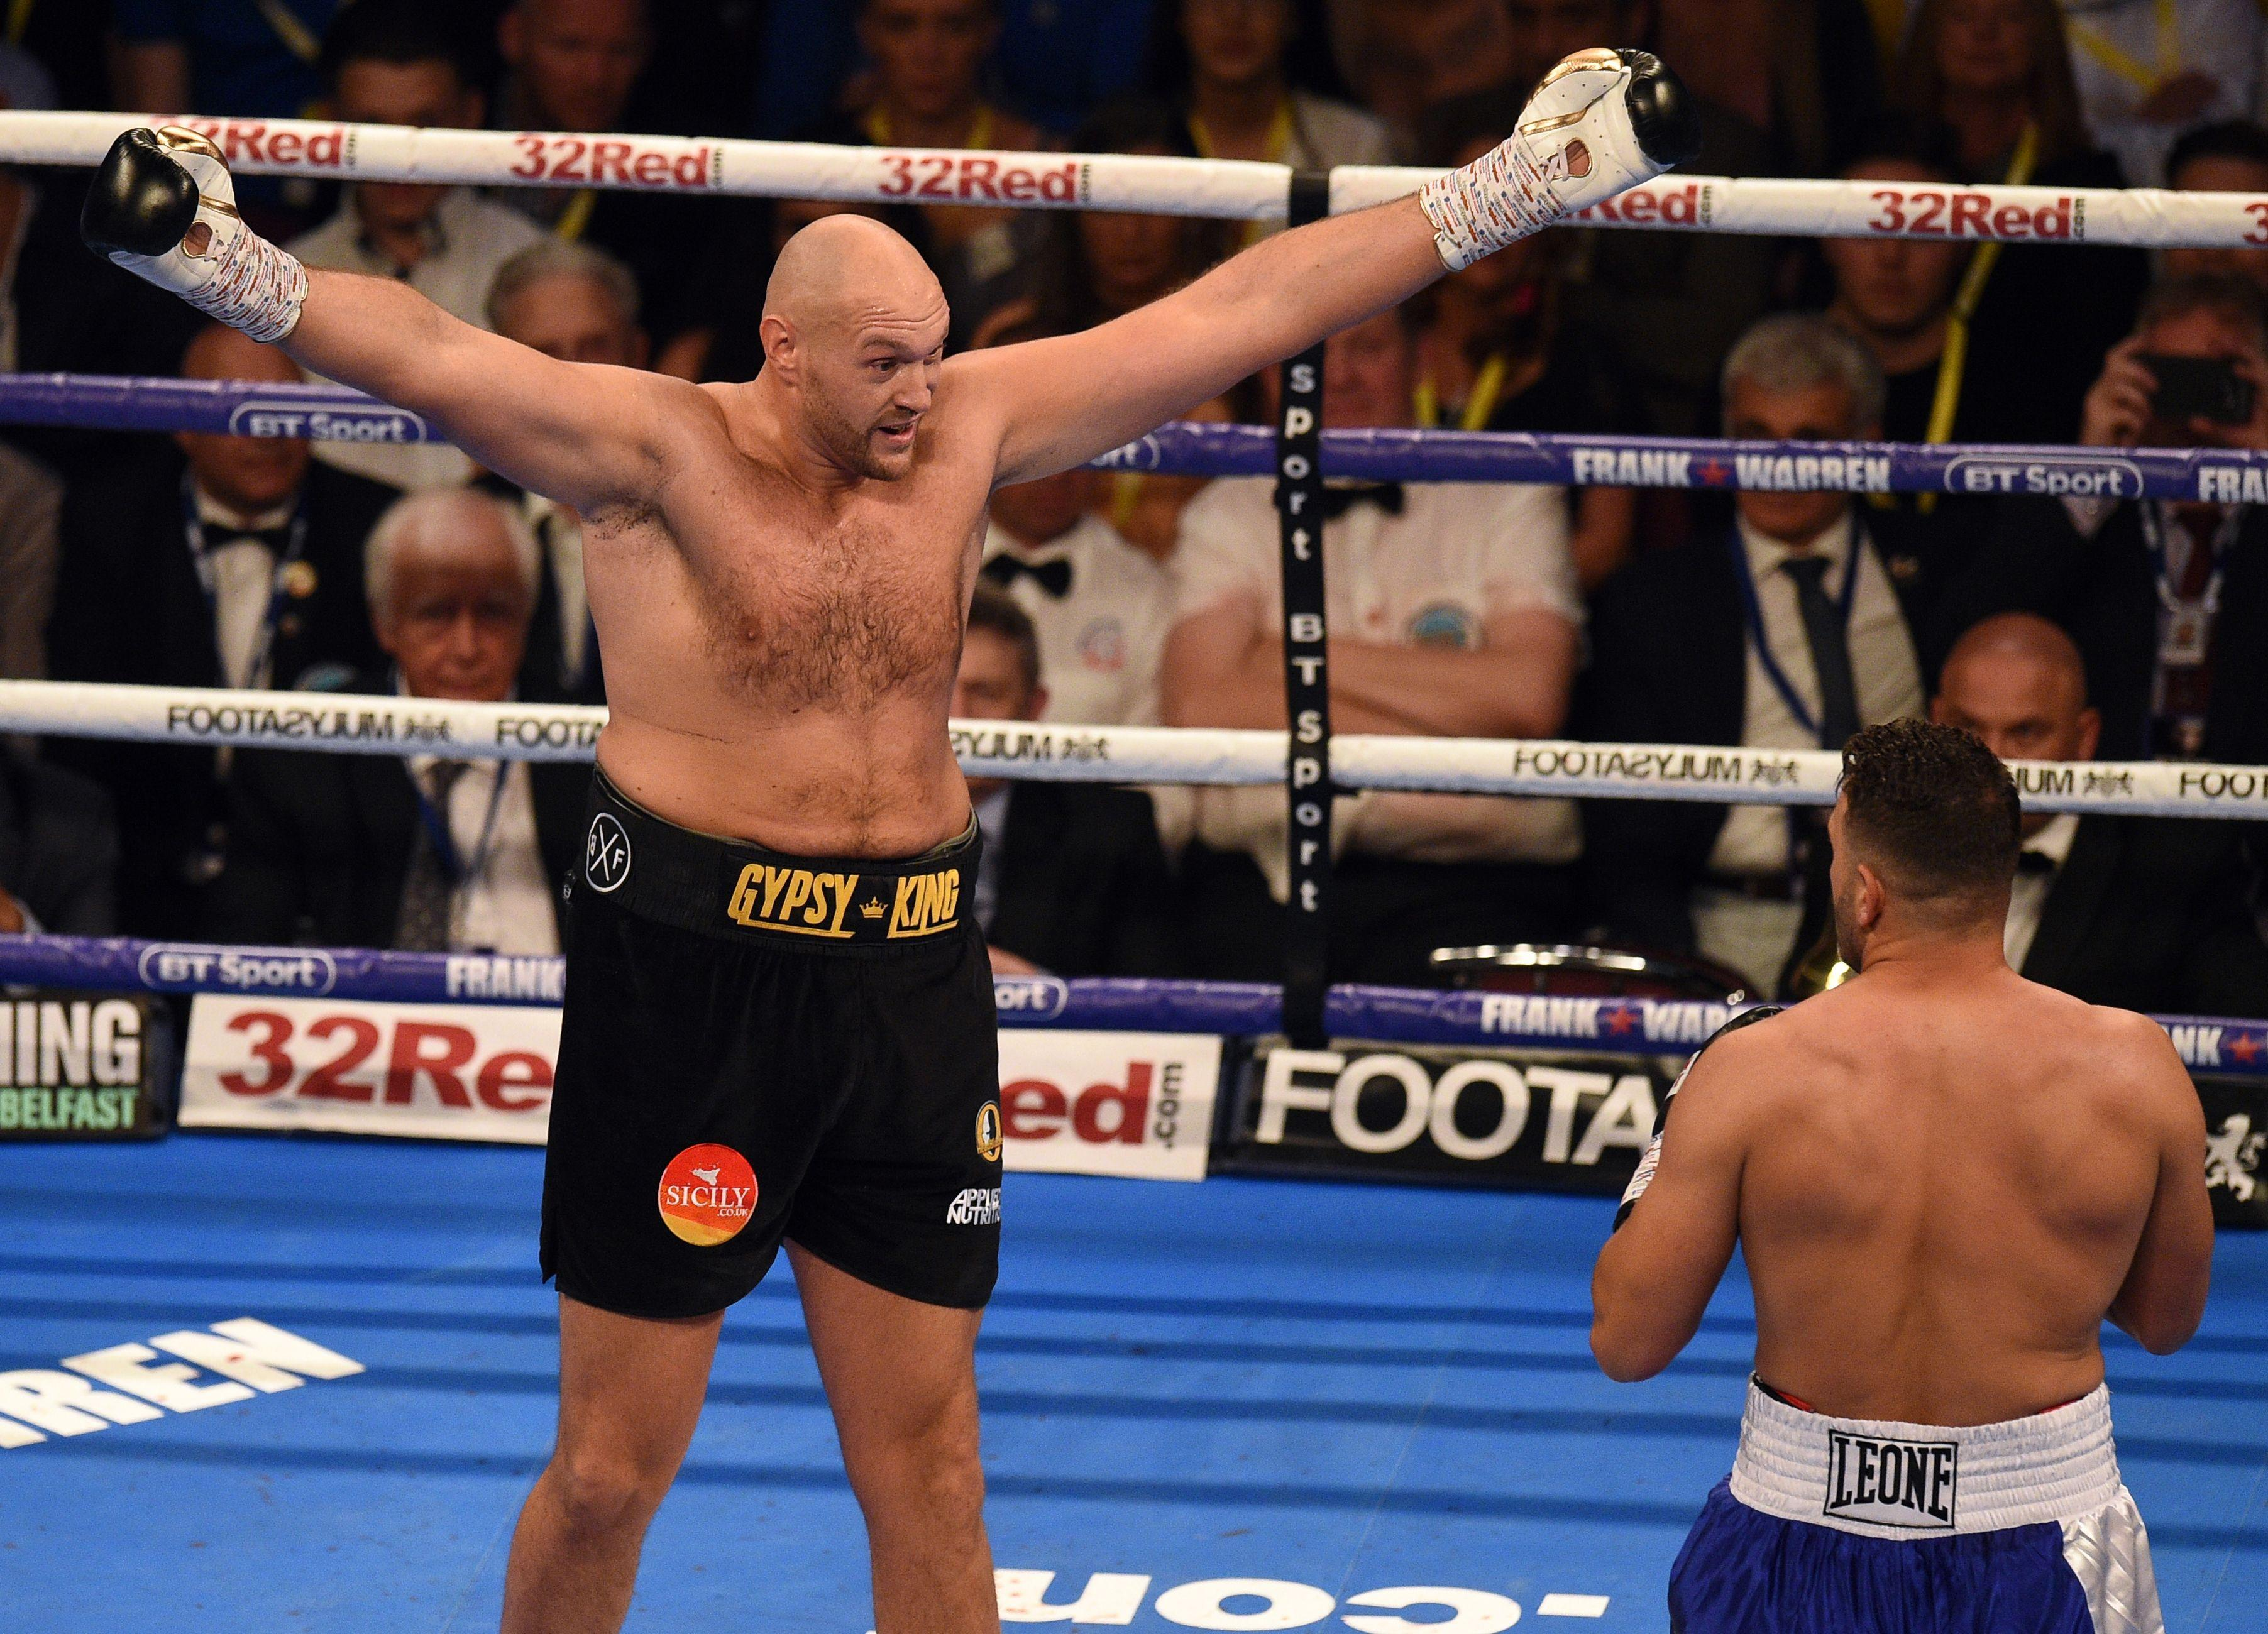 Fury - 26-0 - is fully confident he will win back his old world title belts in the near future